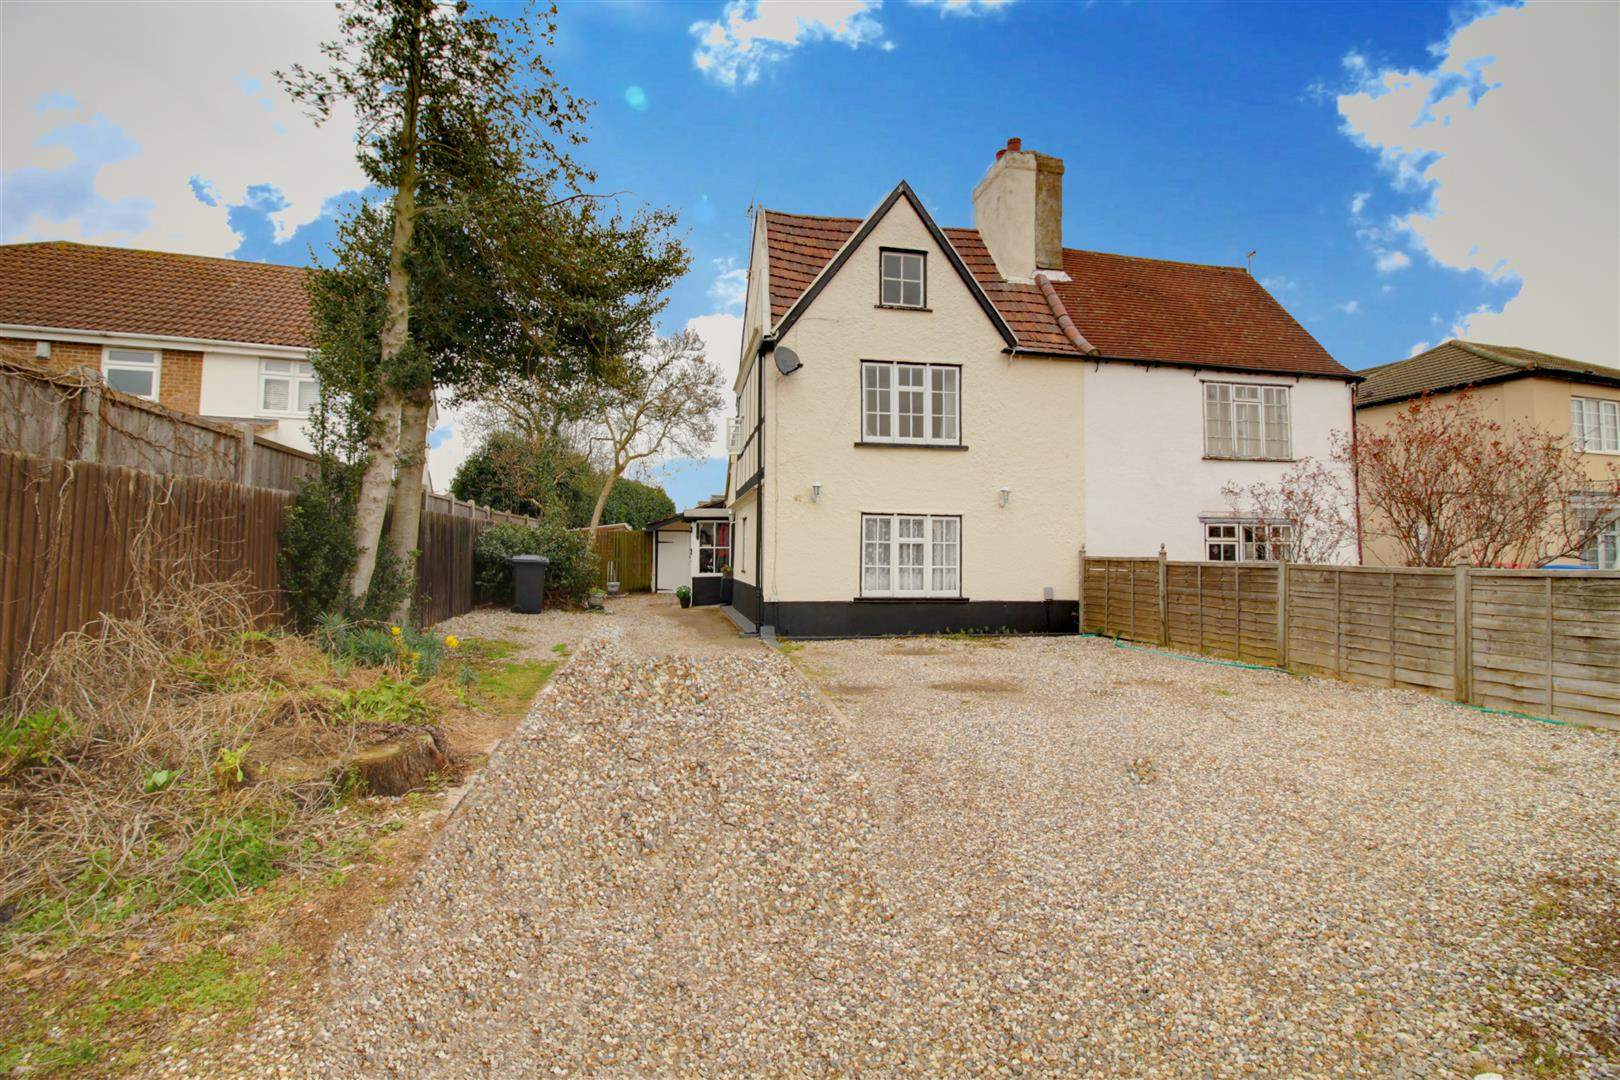 Windmill Lane, Cheshunt - Beautiful Grade II Listed 3 Bedroom Character Property